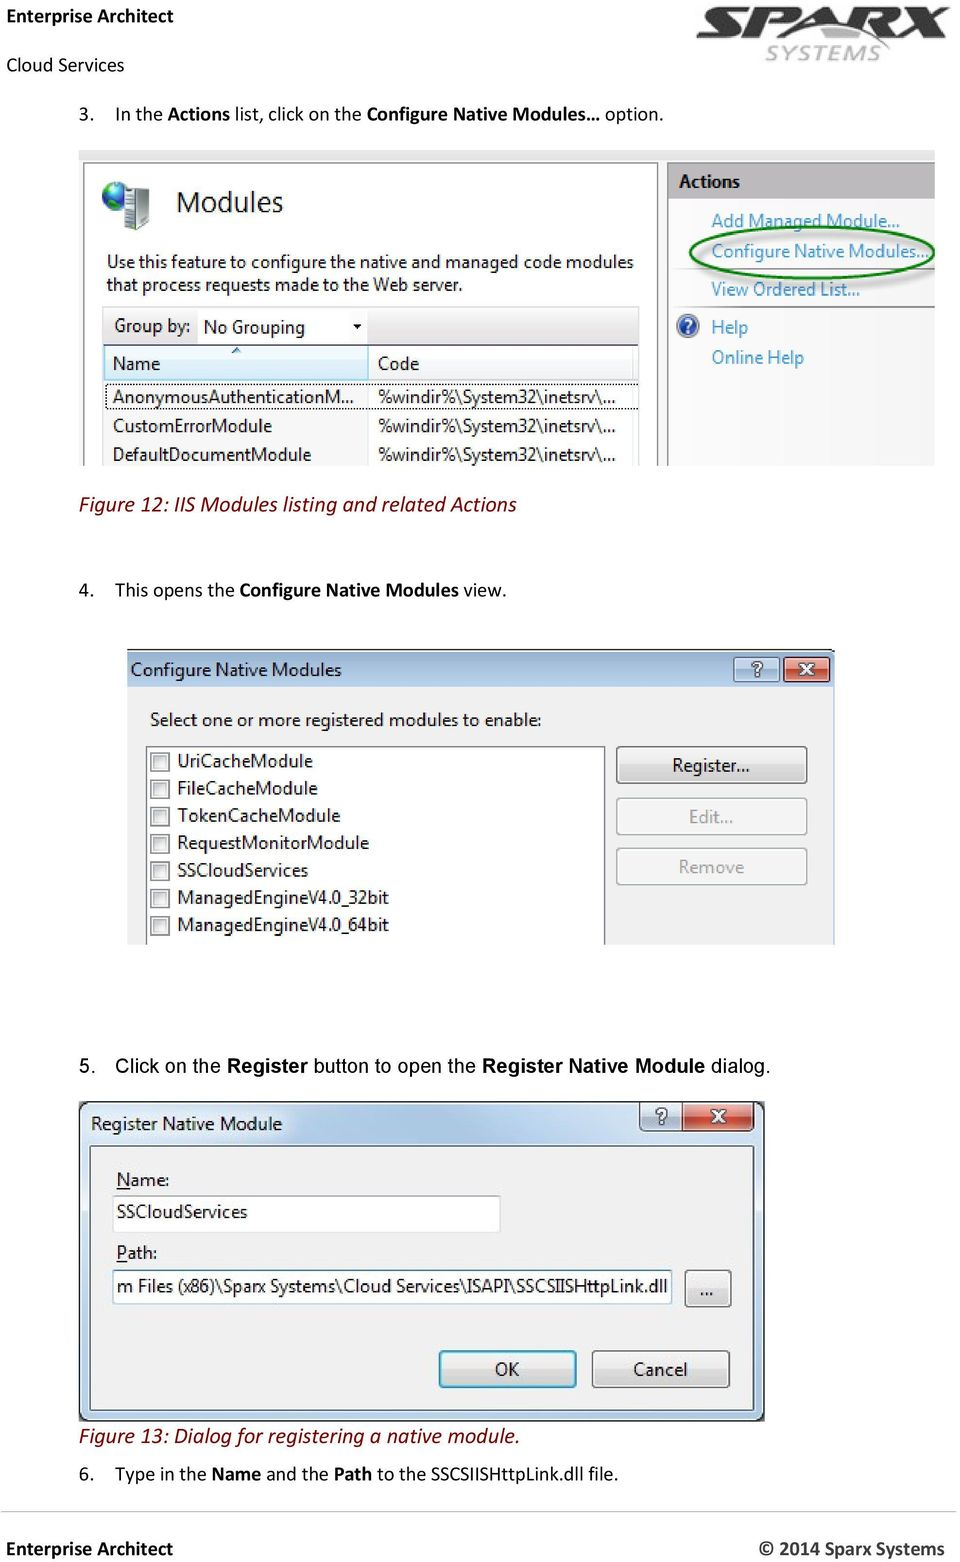 Figure 13: Configure Native Modules dialog 5.